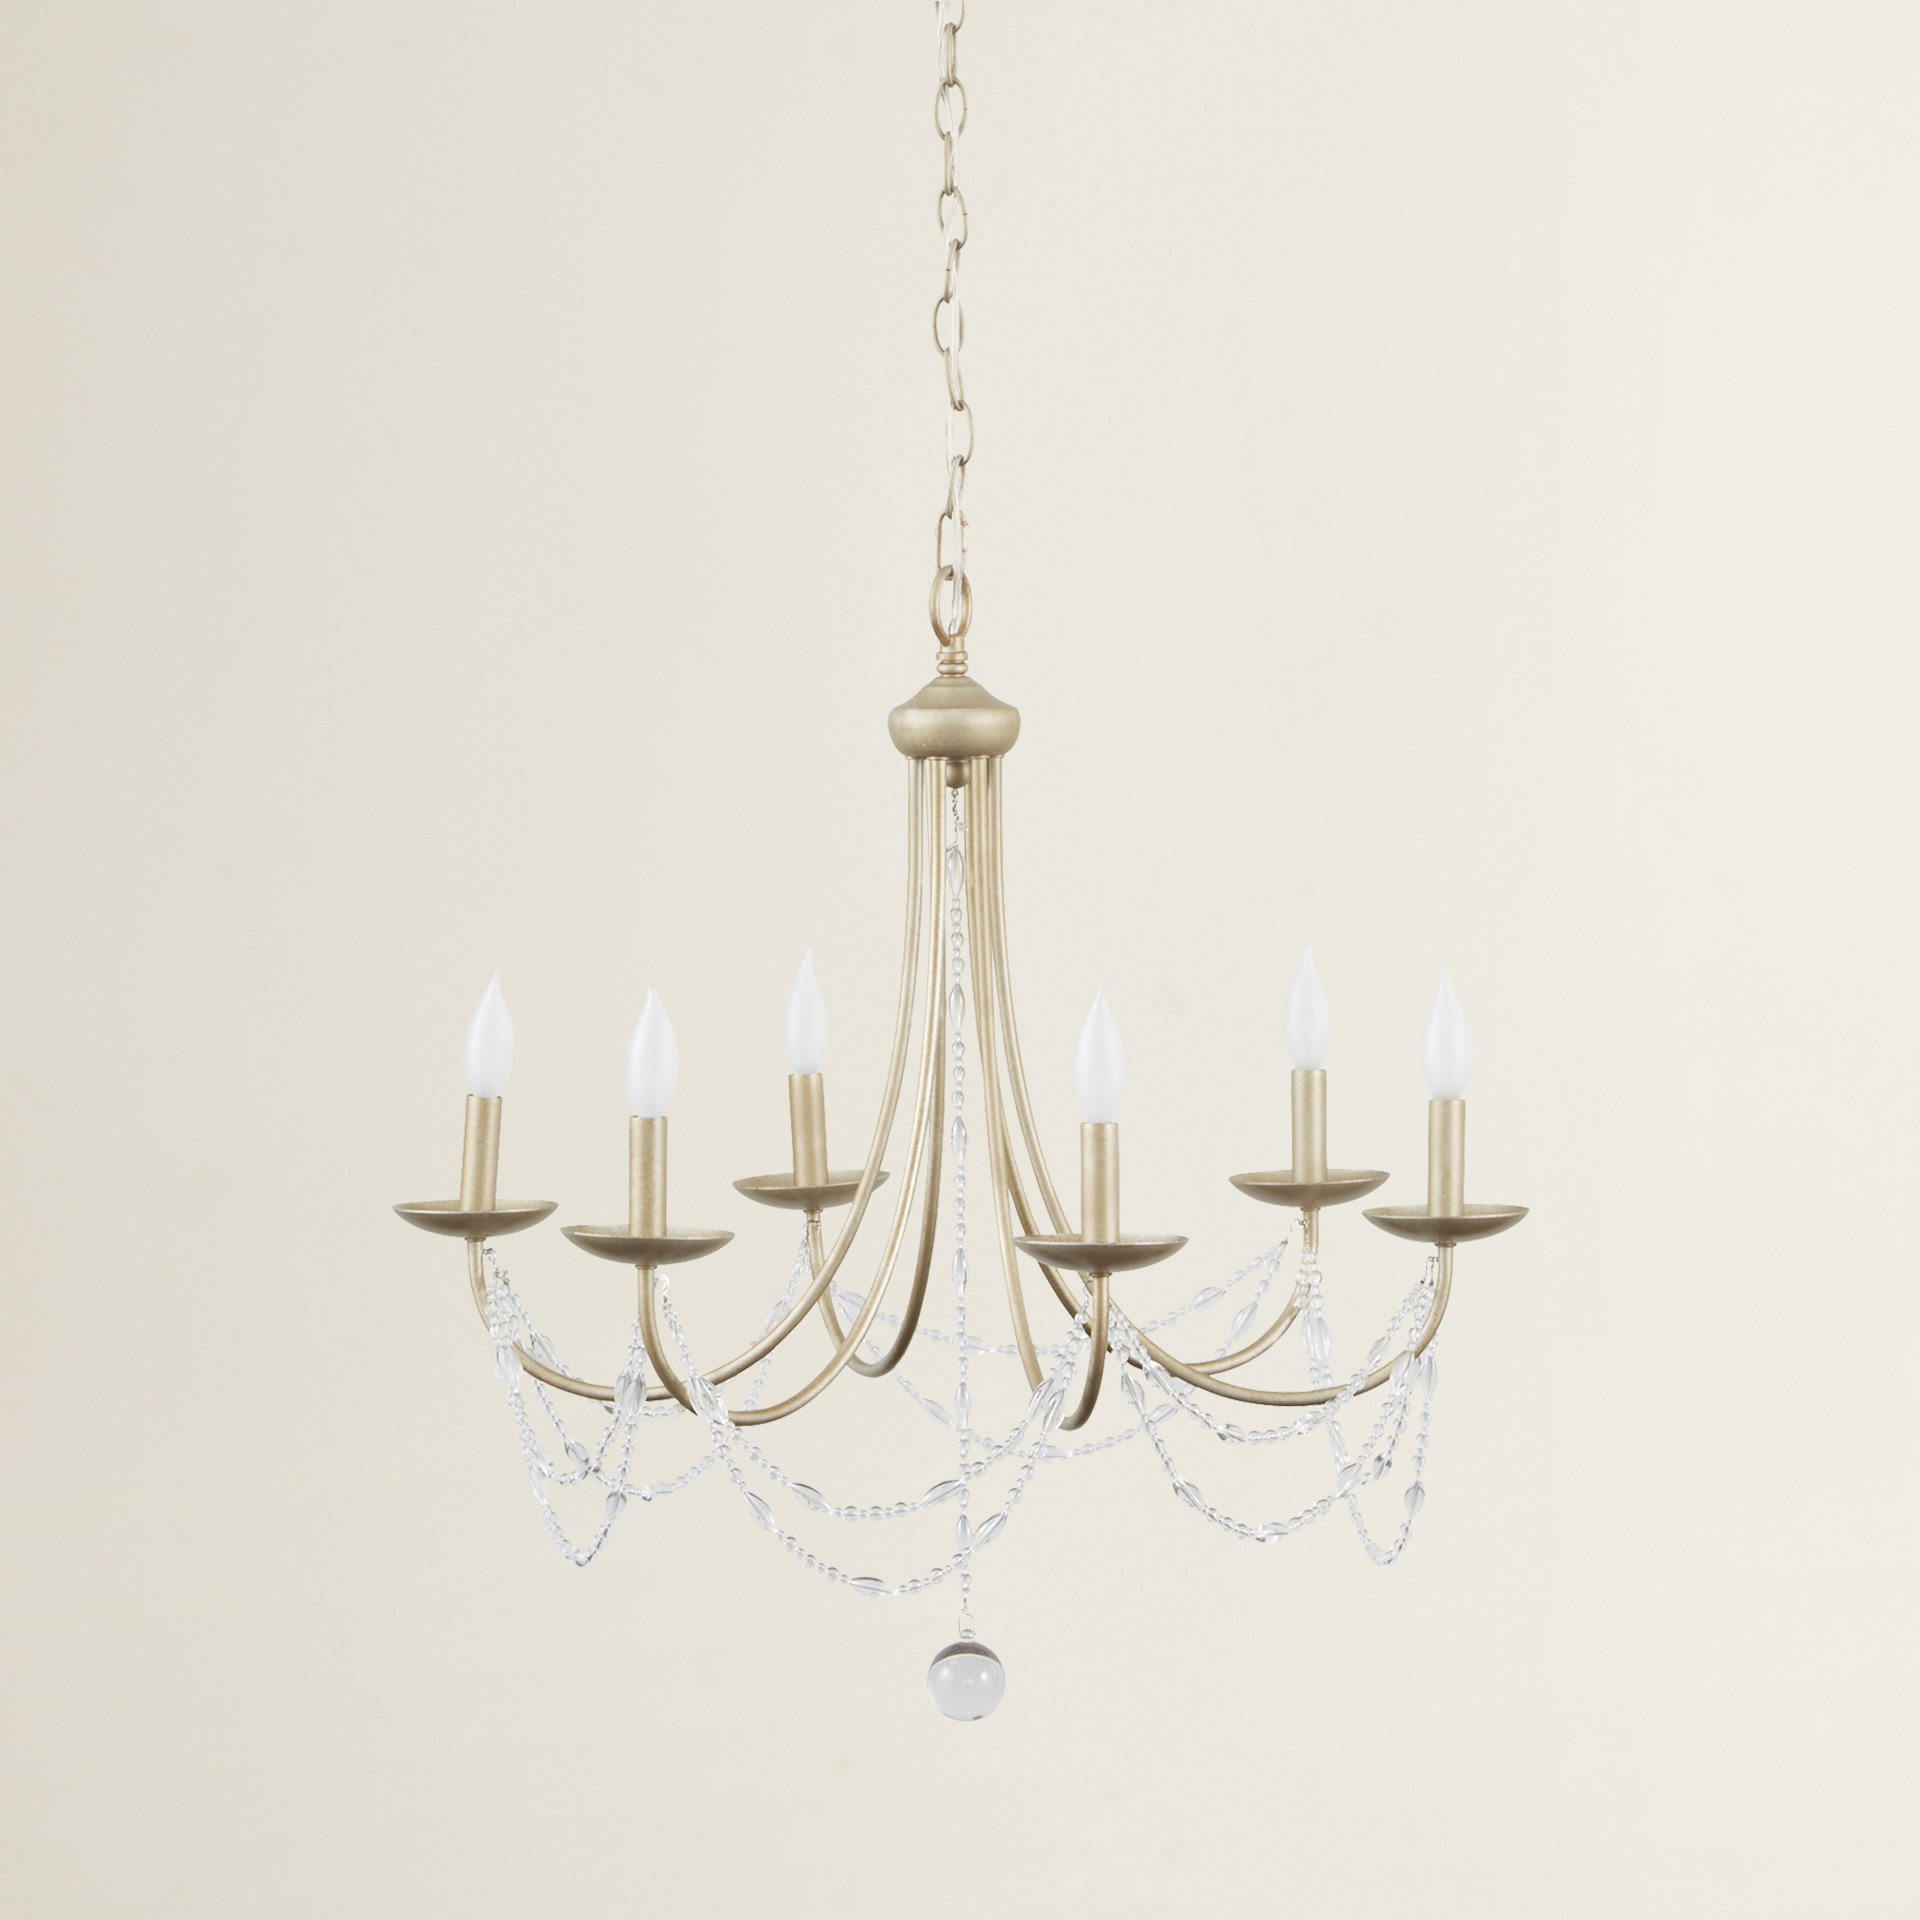 Nantucket 6 Light Candle Style Chandelier Pertaining To Hamza 6 Light Candle Style Chandeliers (View 15 of 30)